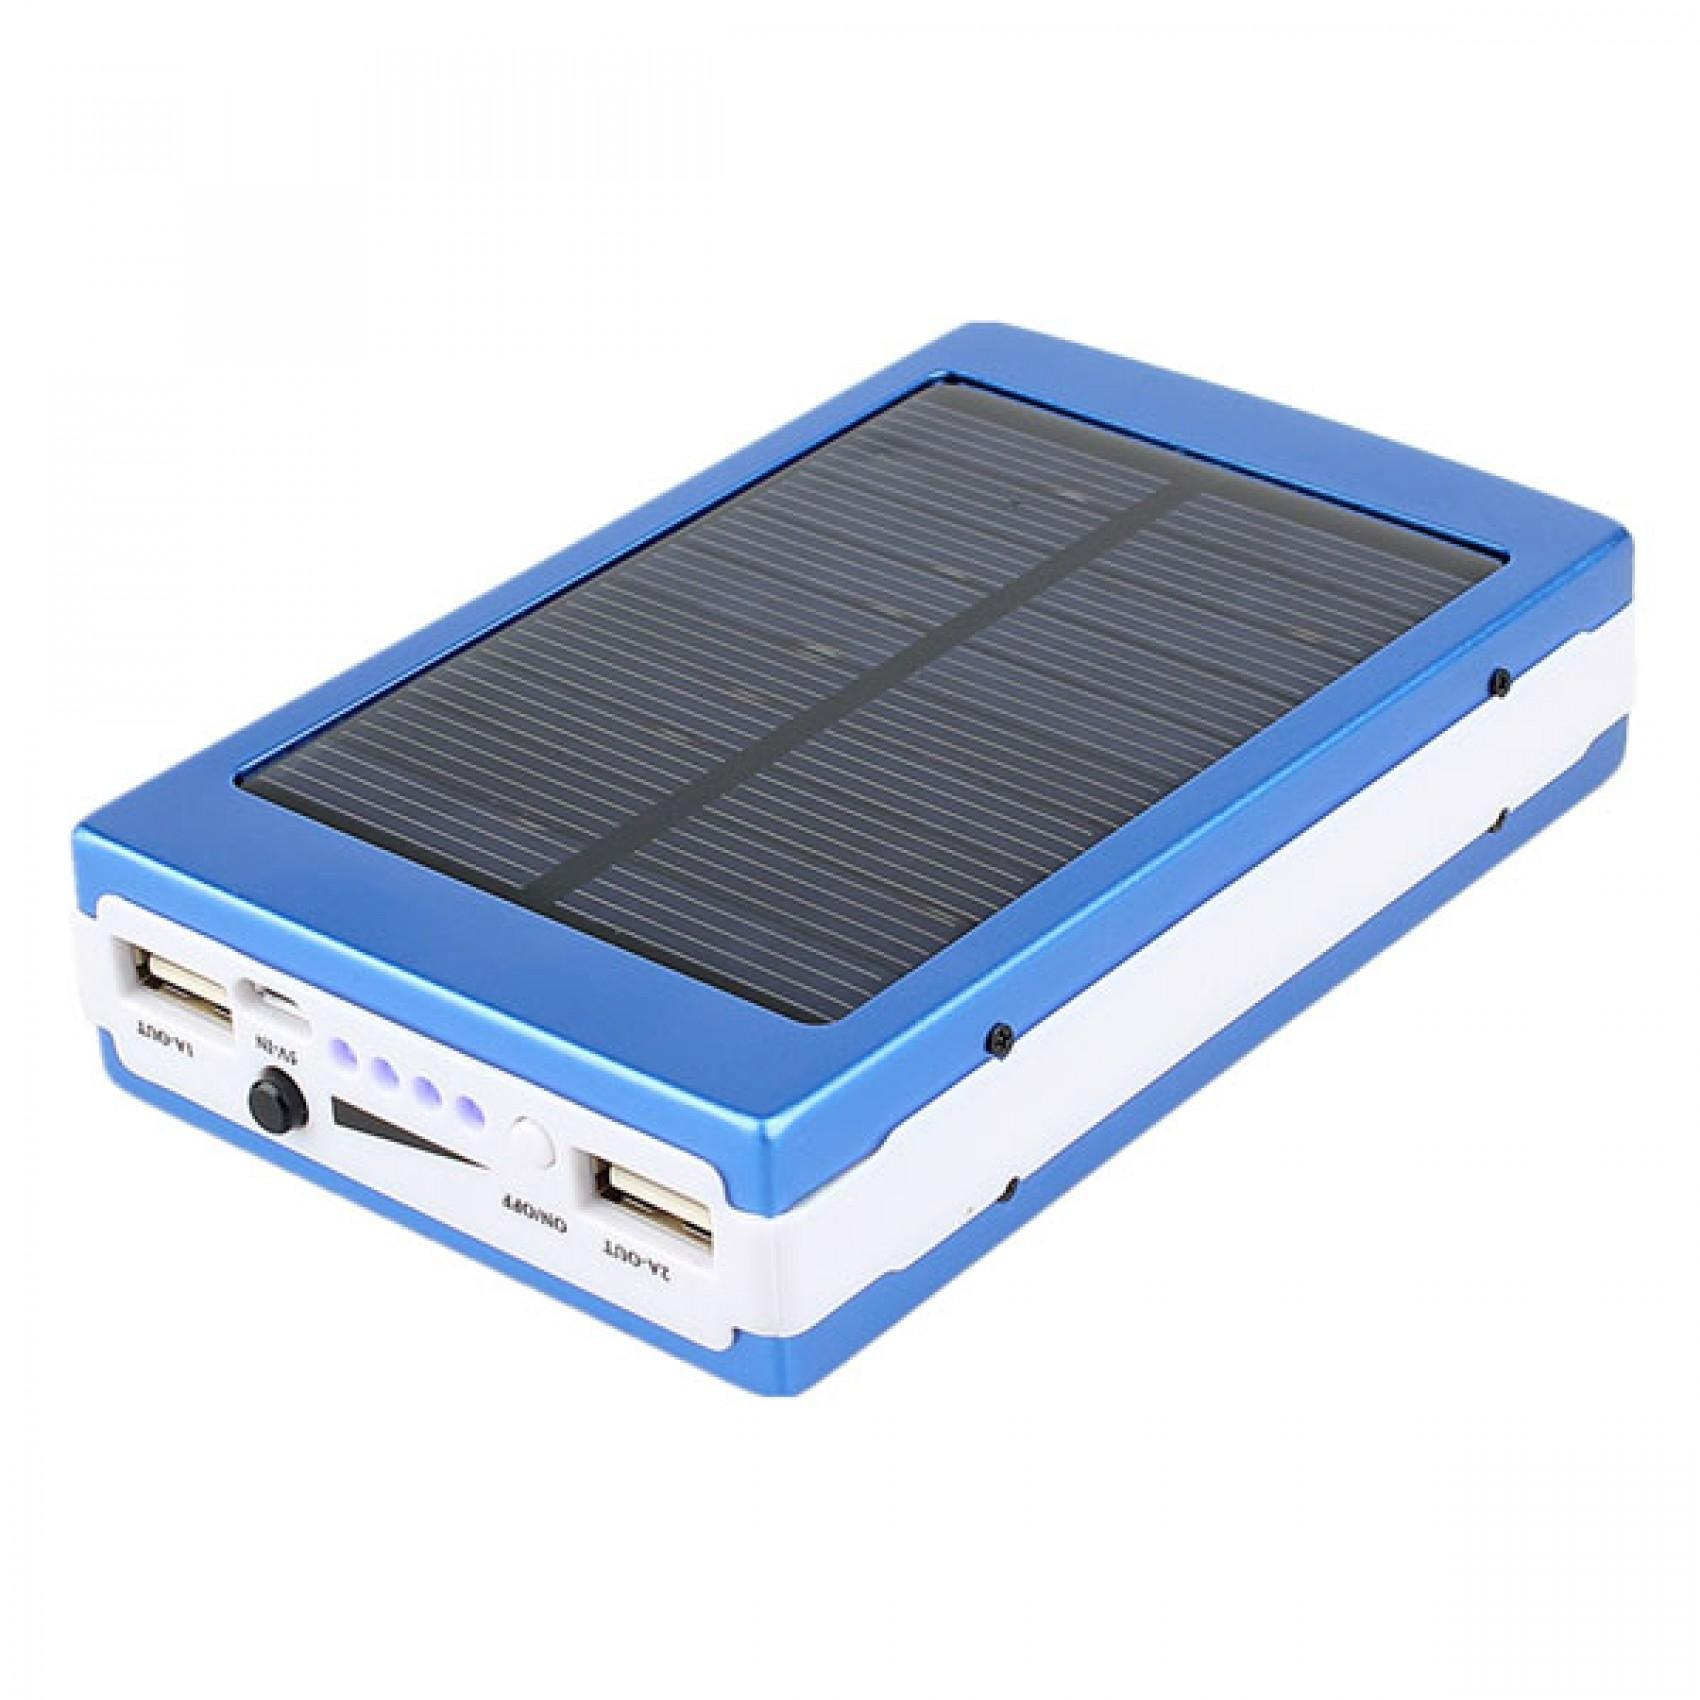 Buy 7100 10000 Mah Power Bank Online At Best Price From M Plus M5 Battery Pack 5000 Black Waterproof 6000mah Solar With Led Bulb